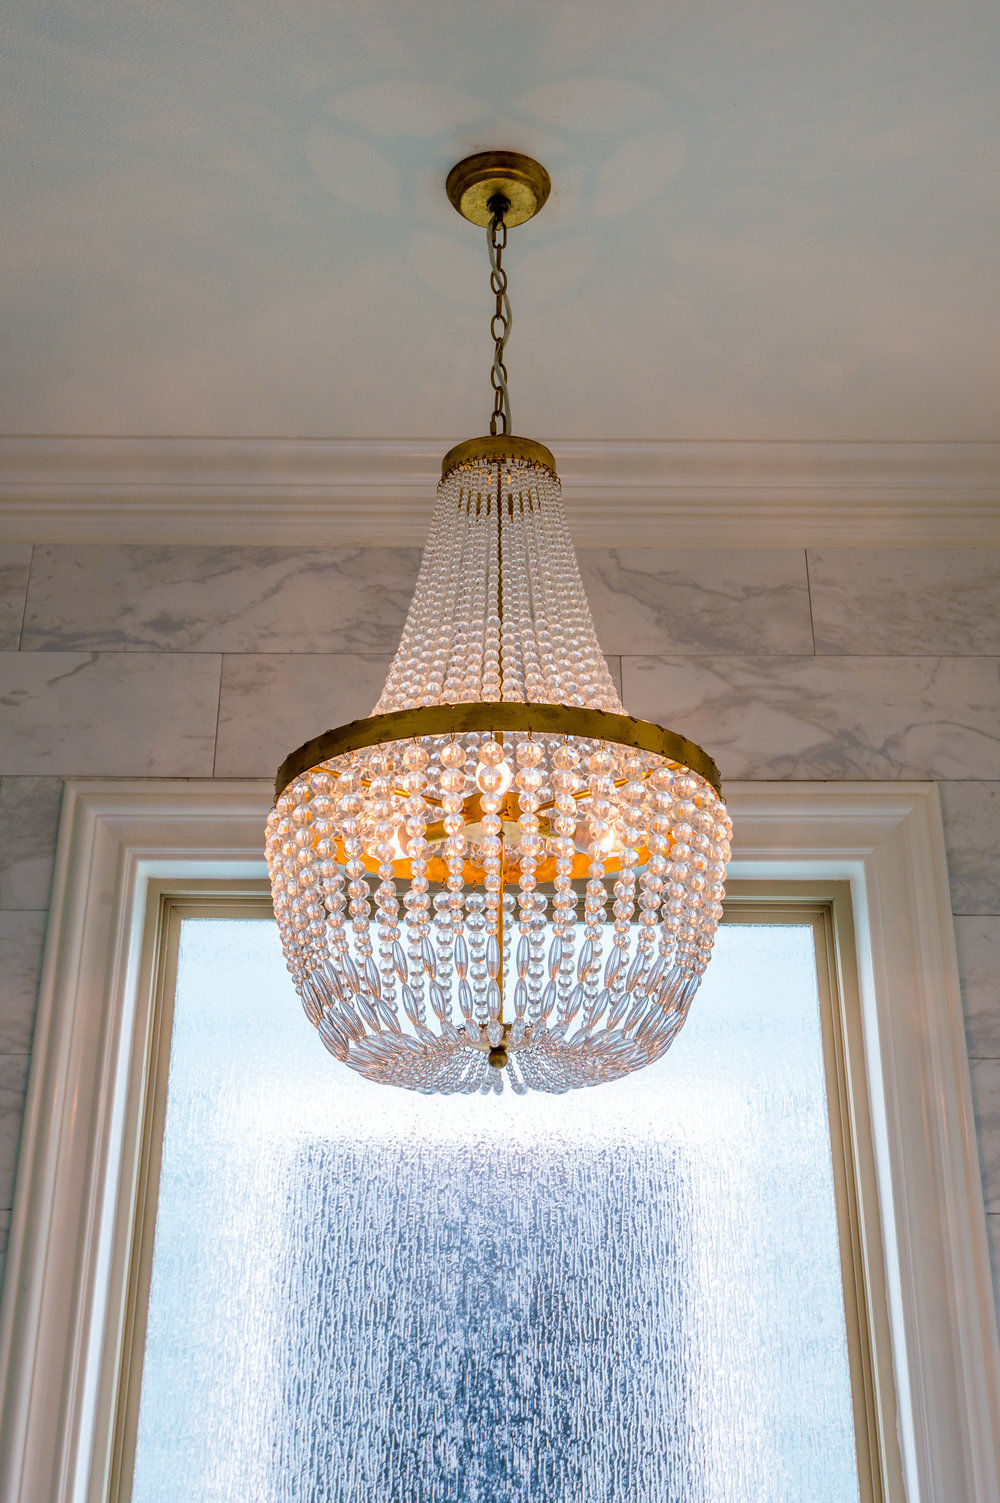 KHB Interiors lighting designer new orleans chandelier details new orleans metairie interior designer .jpg